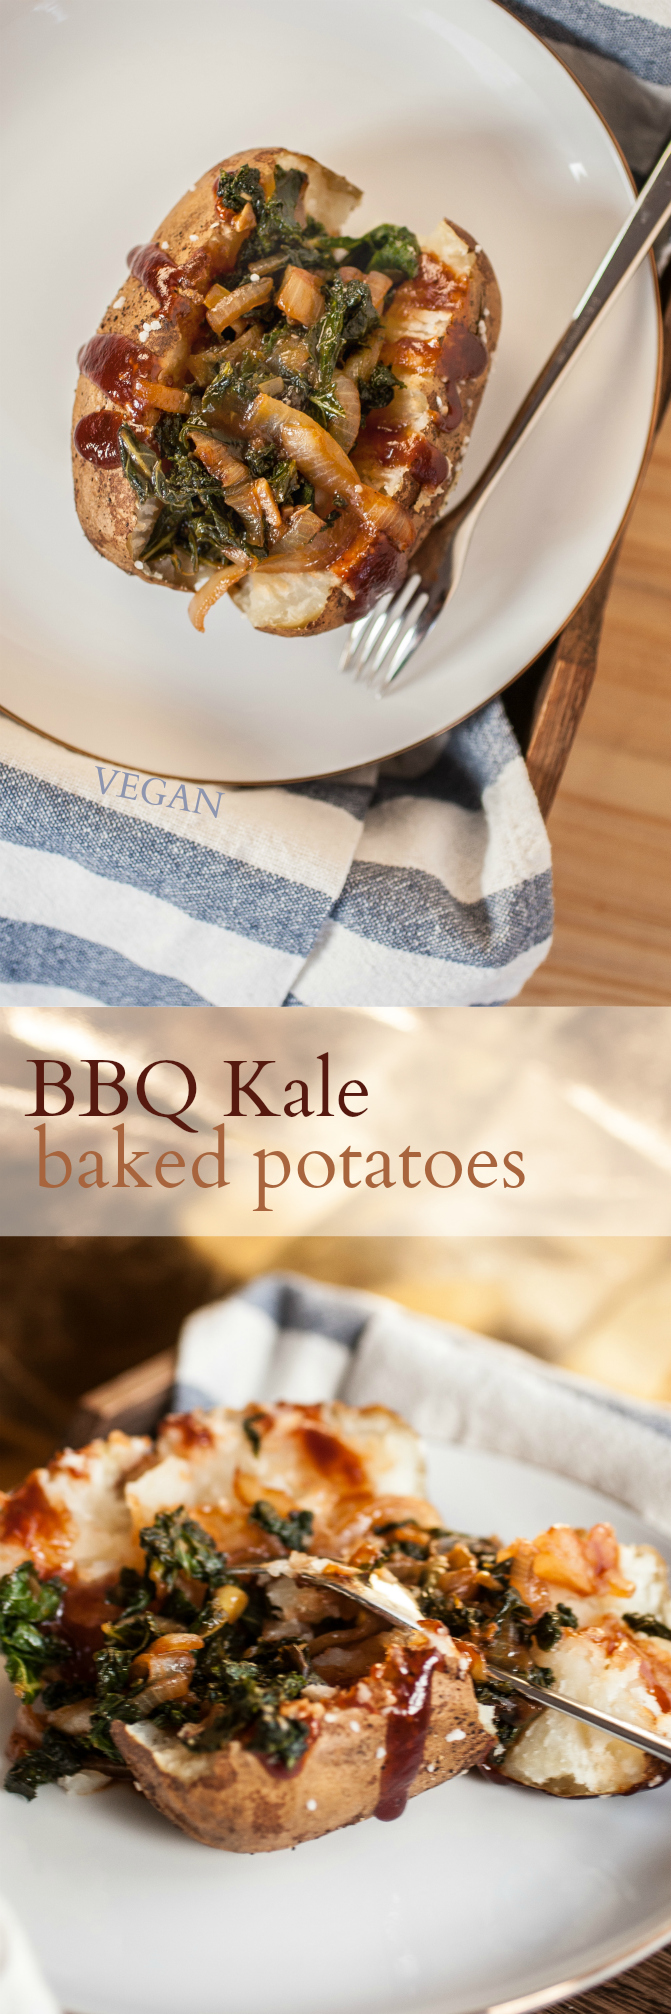 Produce On Parade - BBQ Kale Baked Potatoes - Sometimes you just need a baked potato! Who would have thought that kale dripping in BBQ sauce and sweet caramelized onions would make such a scrumptious combination? This is a easy and uncomplicated meal that just takes a bit of time for the potatoes. It's a perfect introduction to a more summery mood.